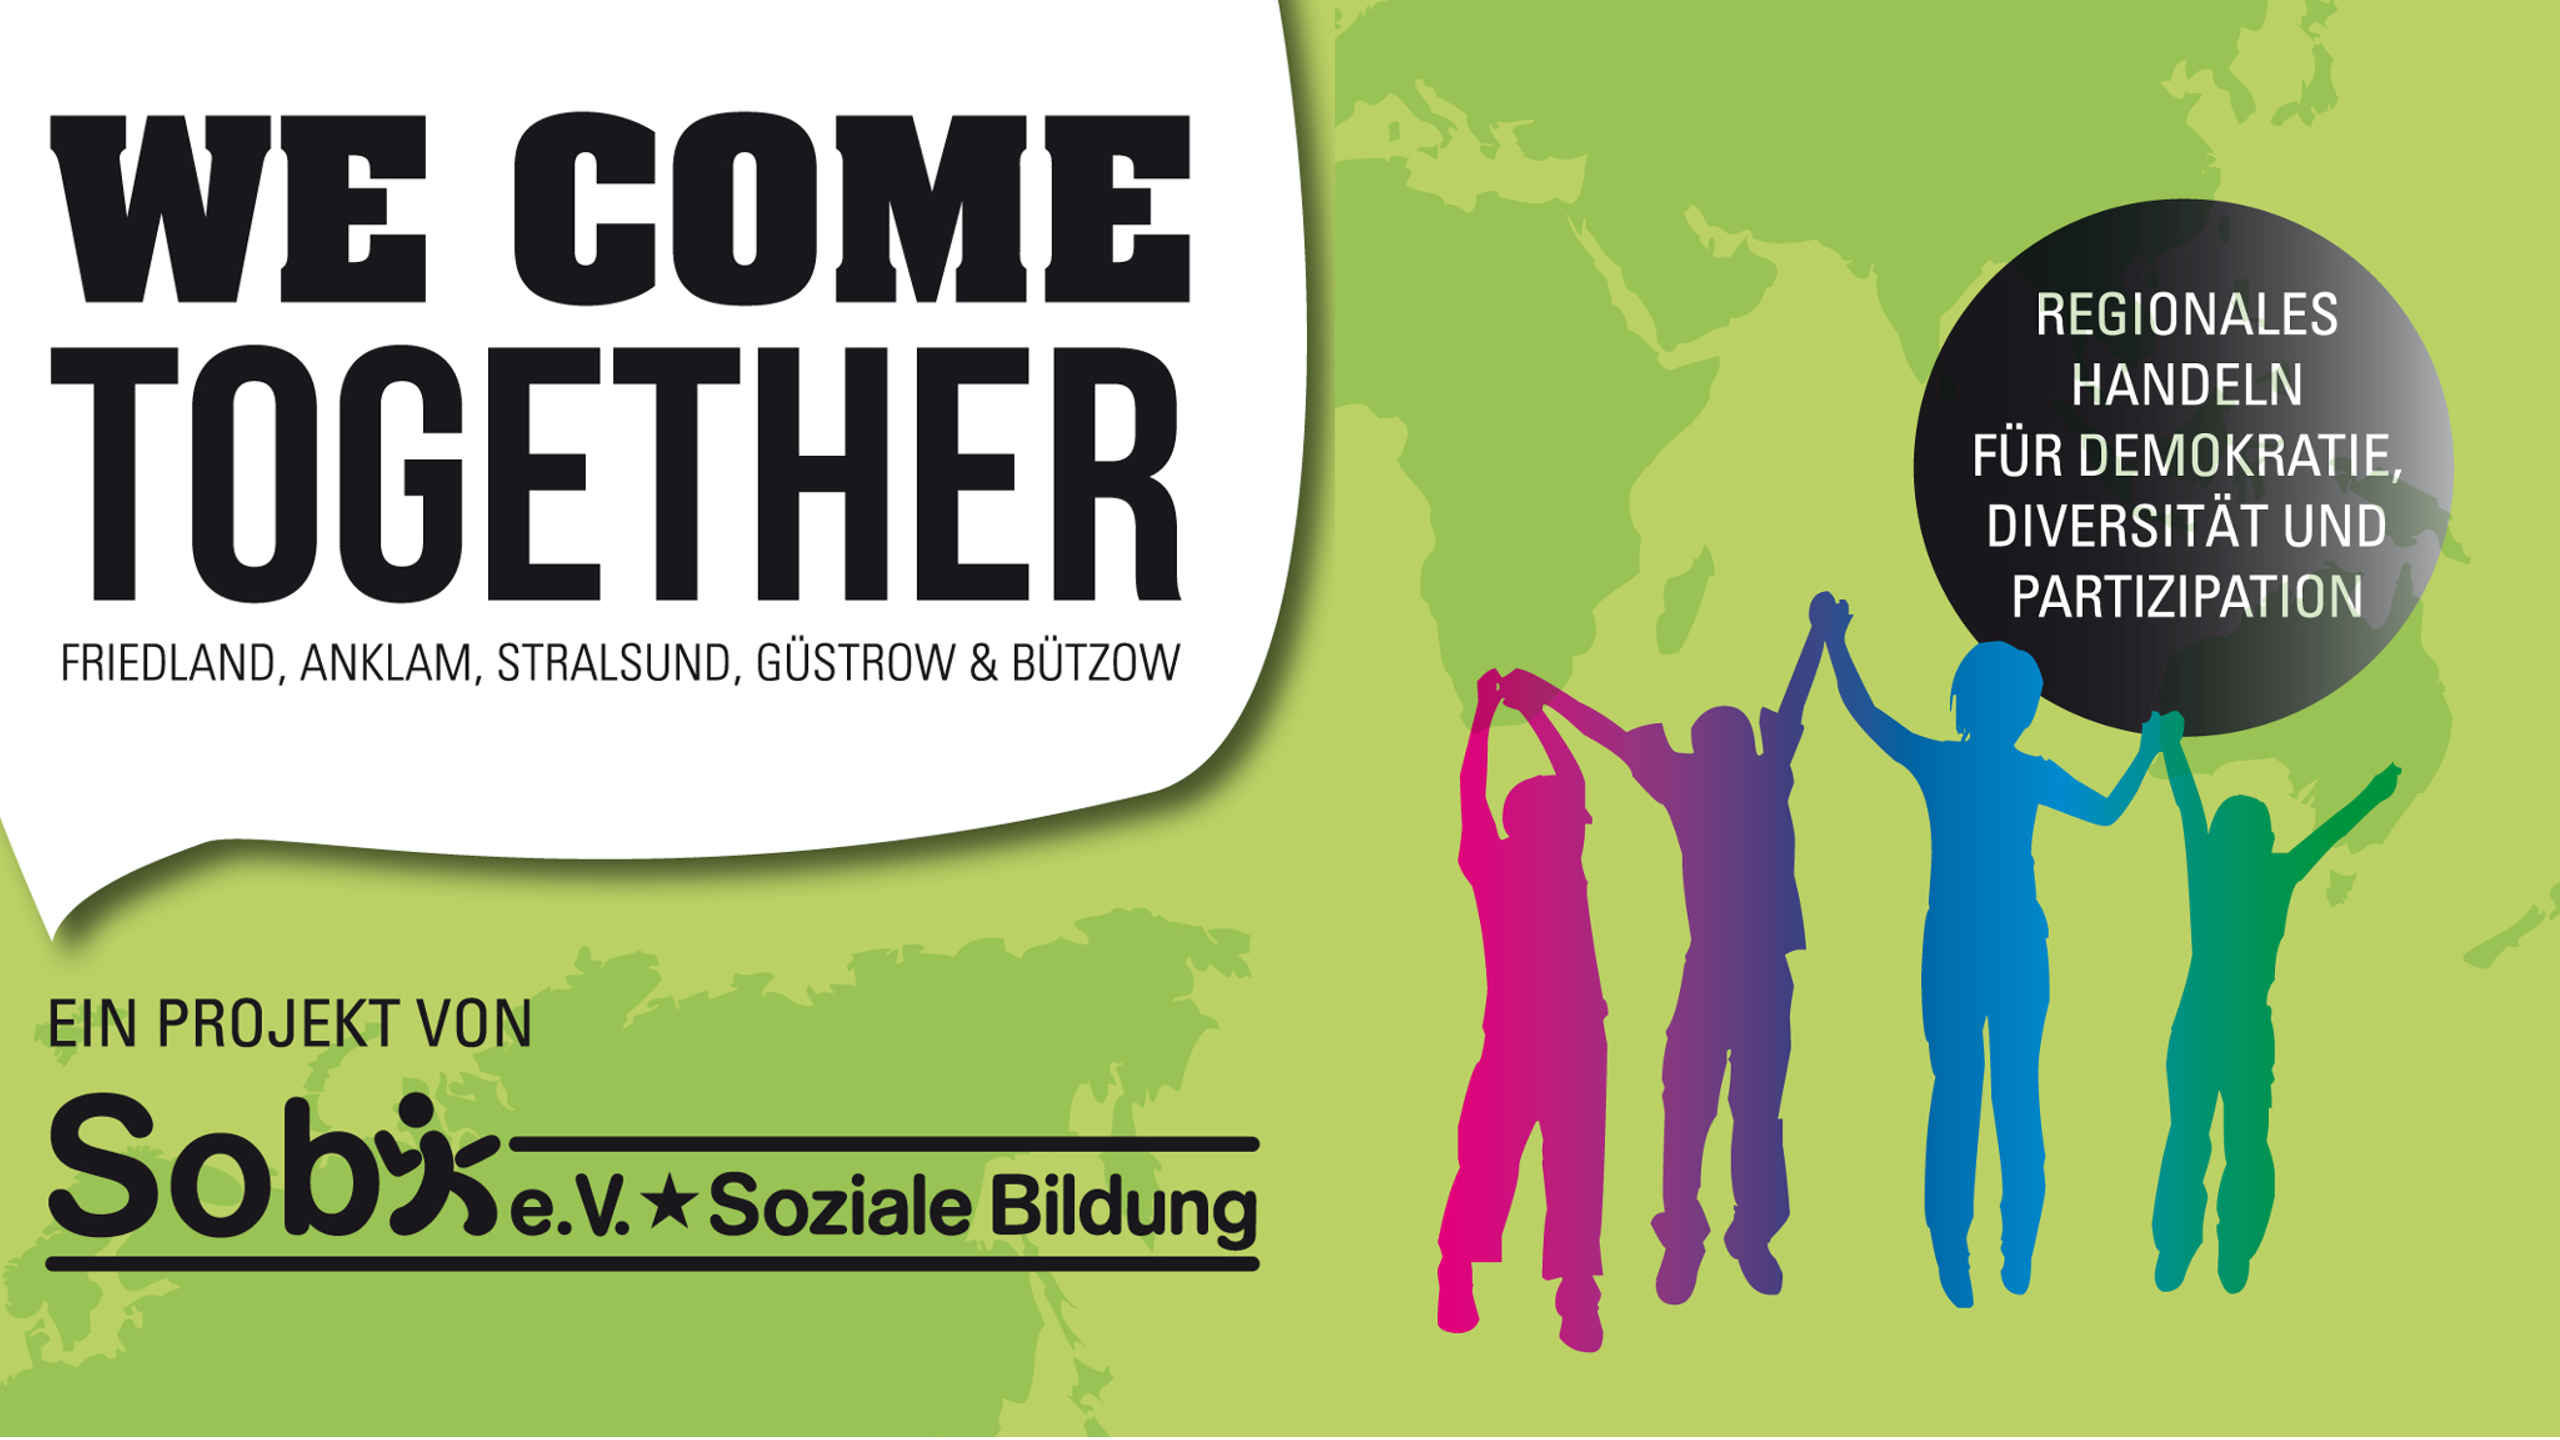 Modellprojekt: We come together